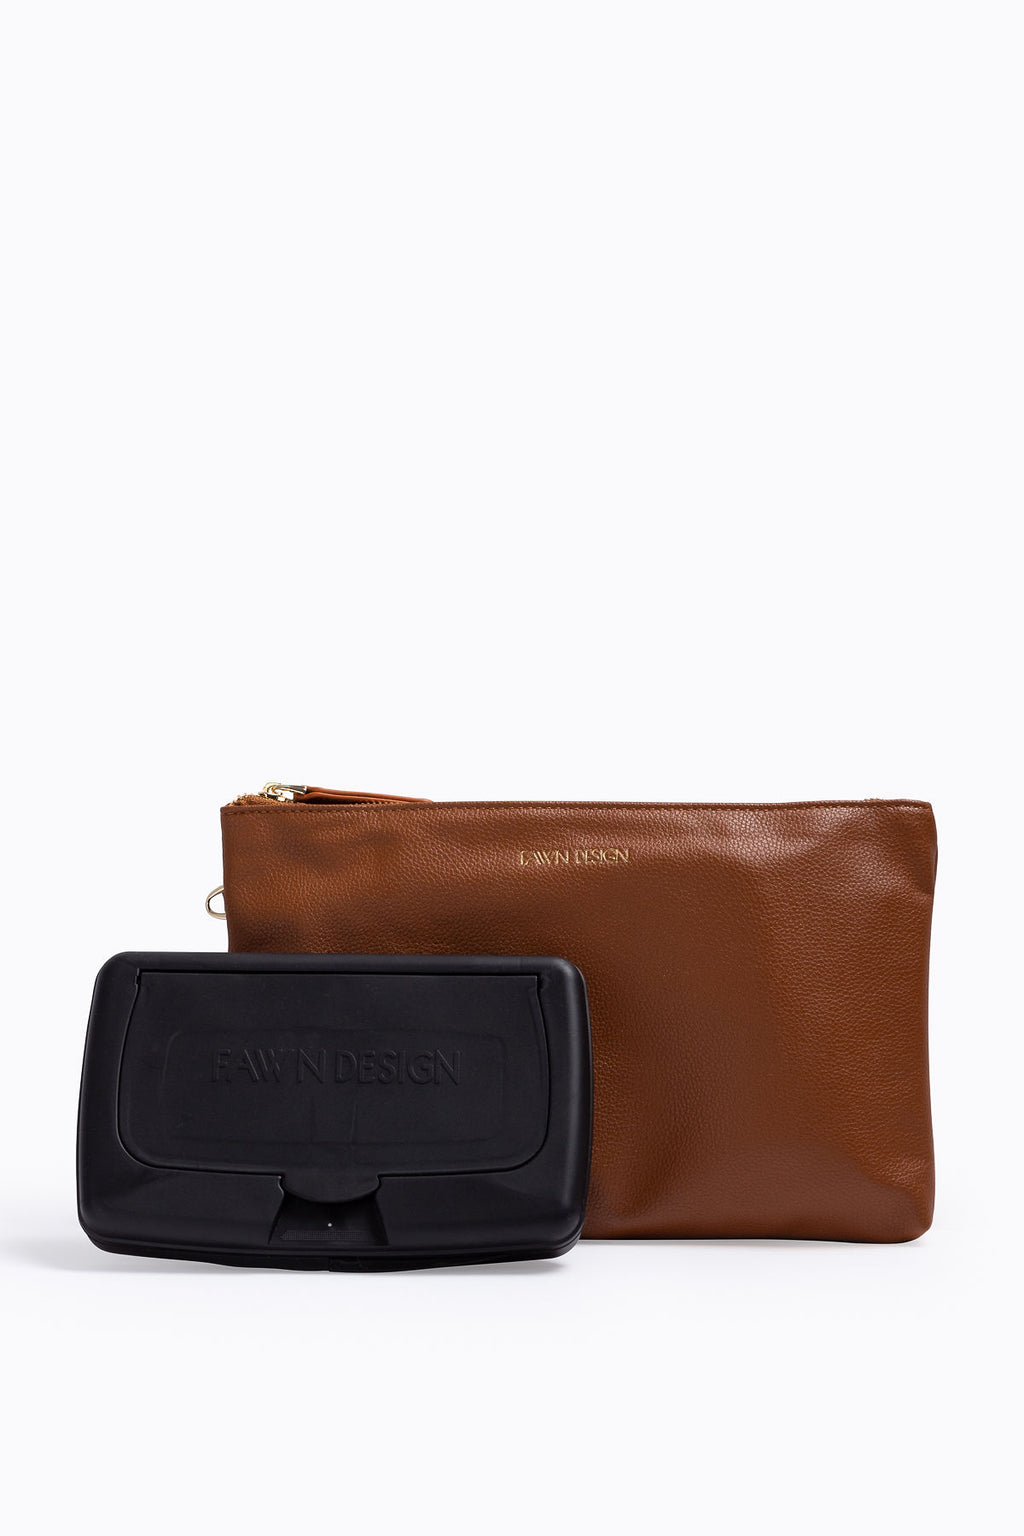 Fawn Design: The Changing Clutch in Brown